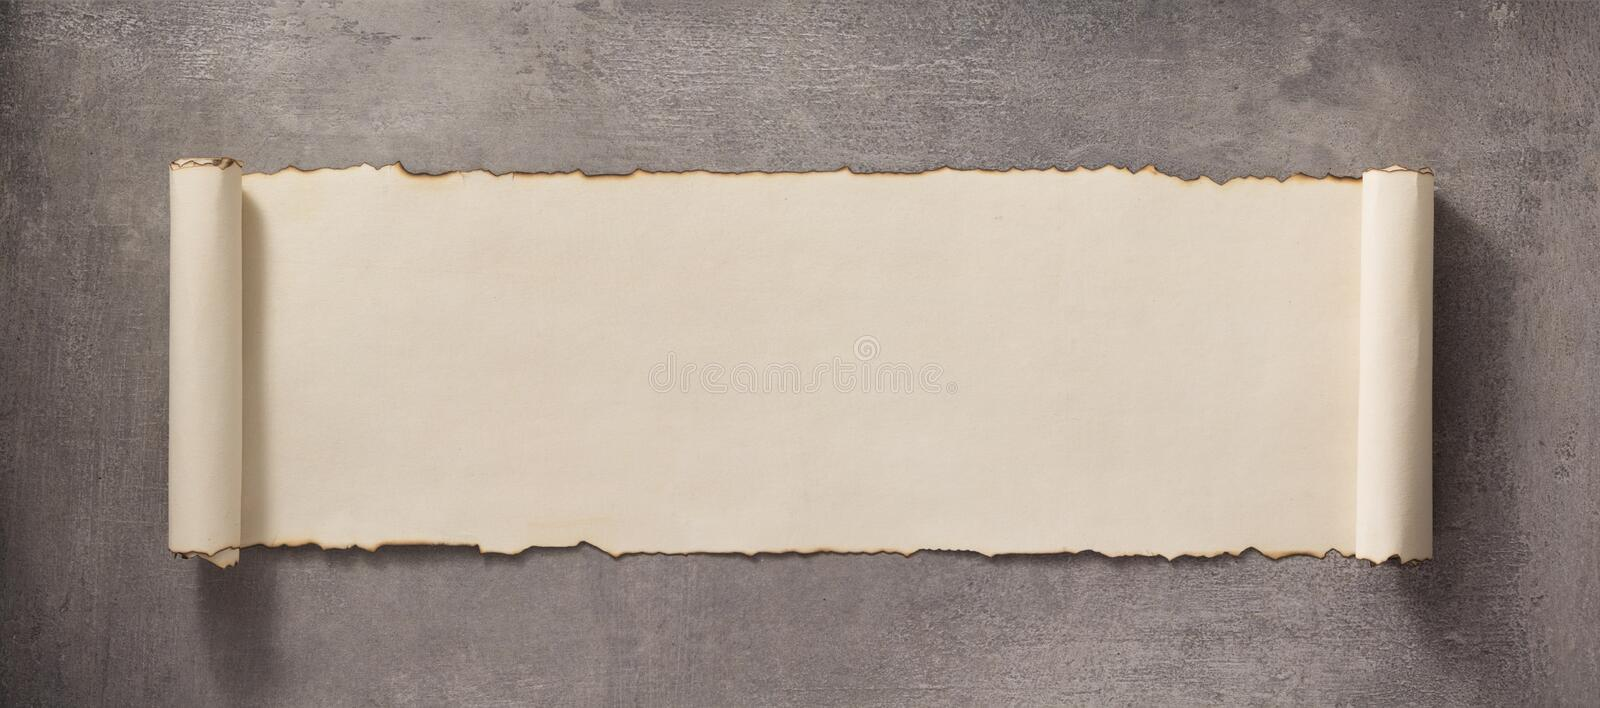 Parchment scroll at concrete surface royalty free stock photo